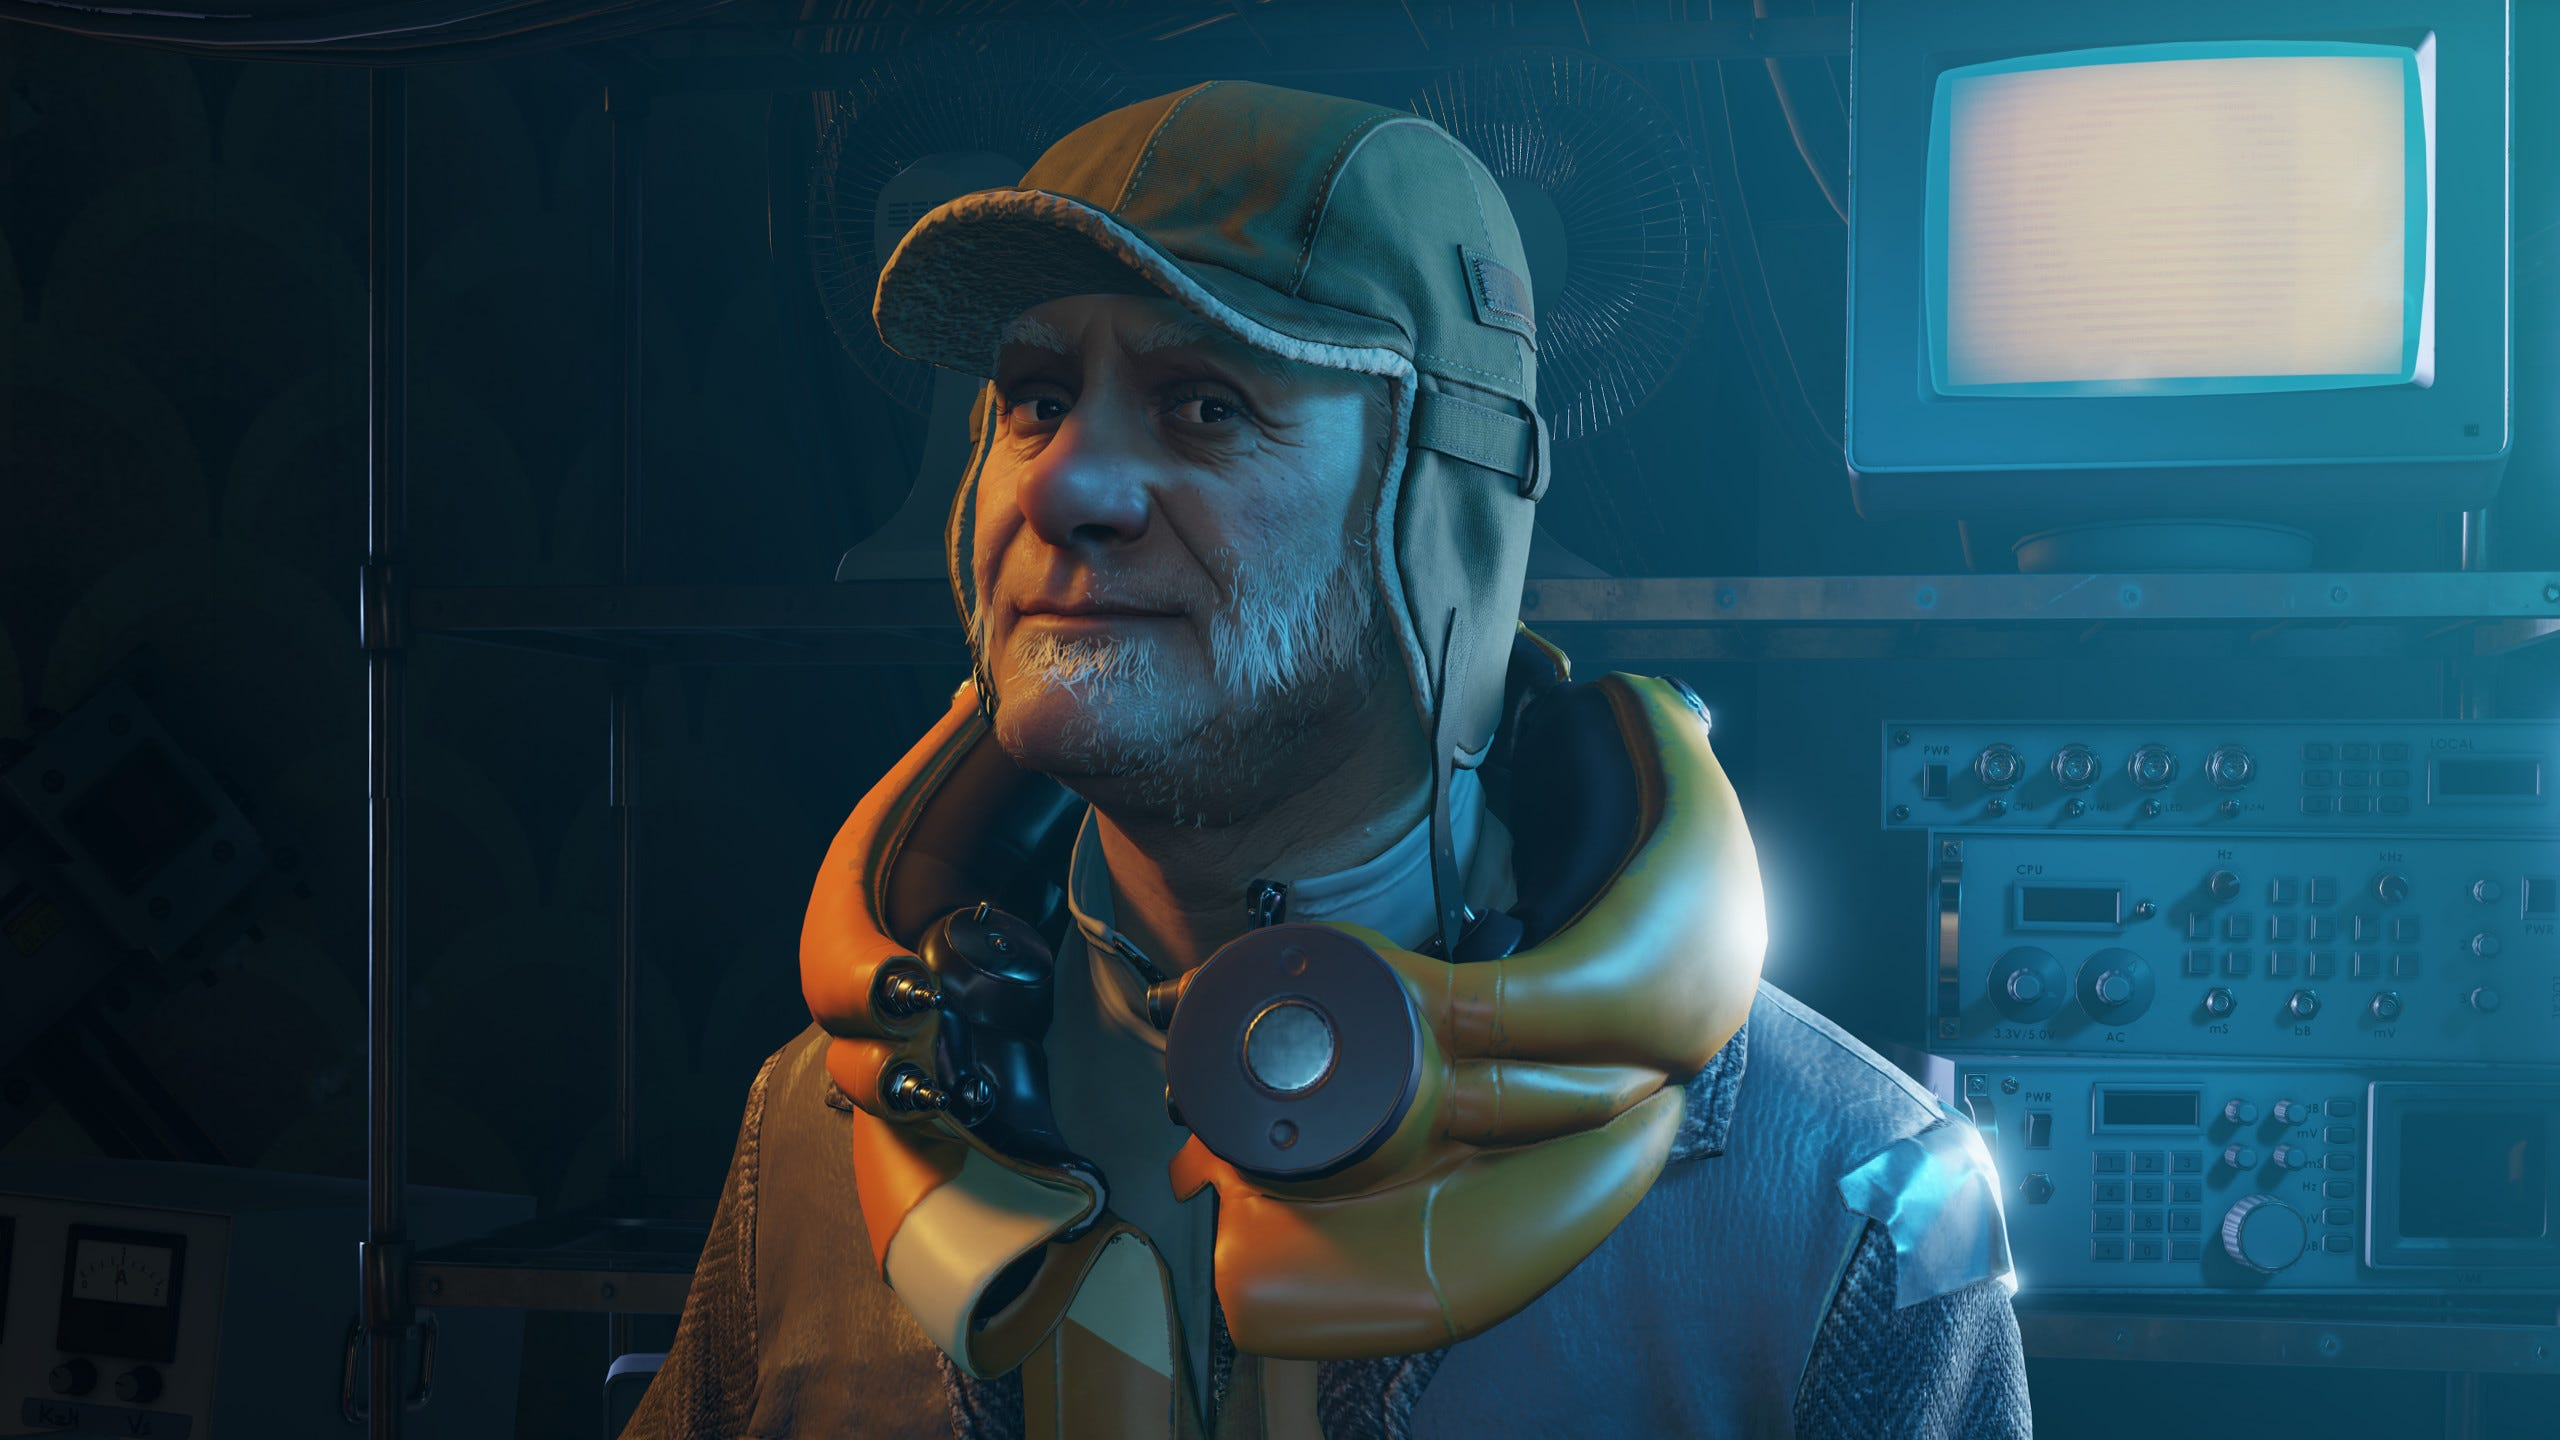 Russel from Half Life: Alyx